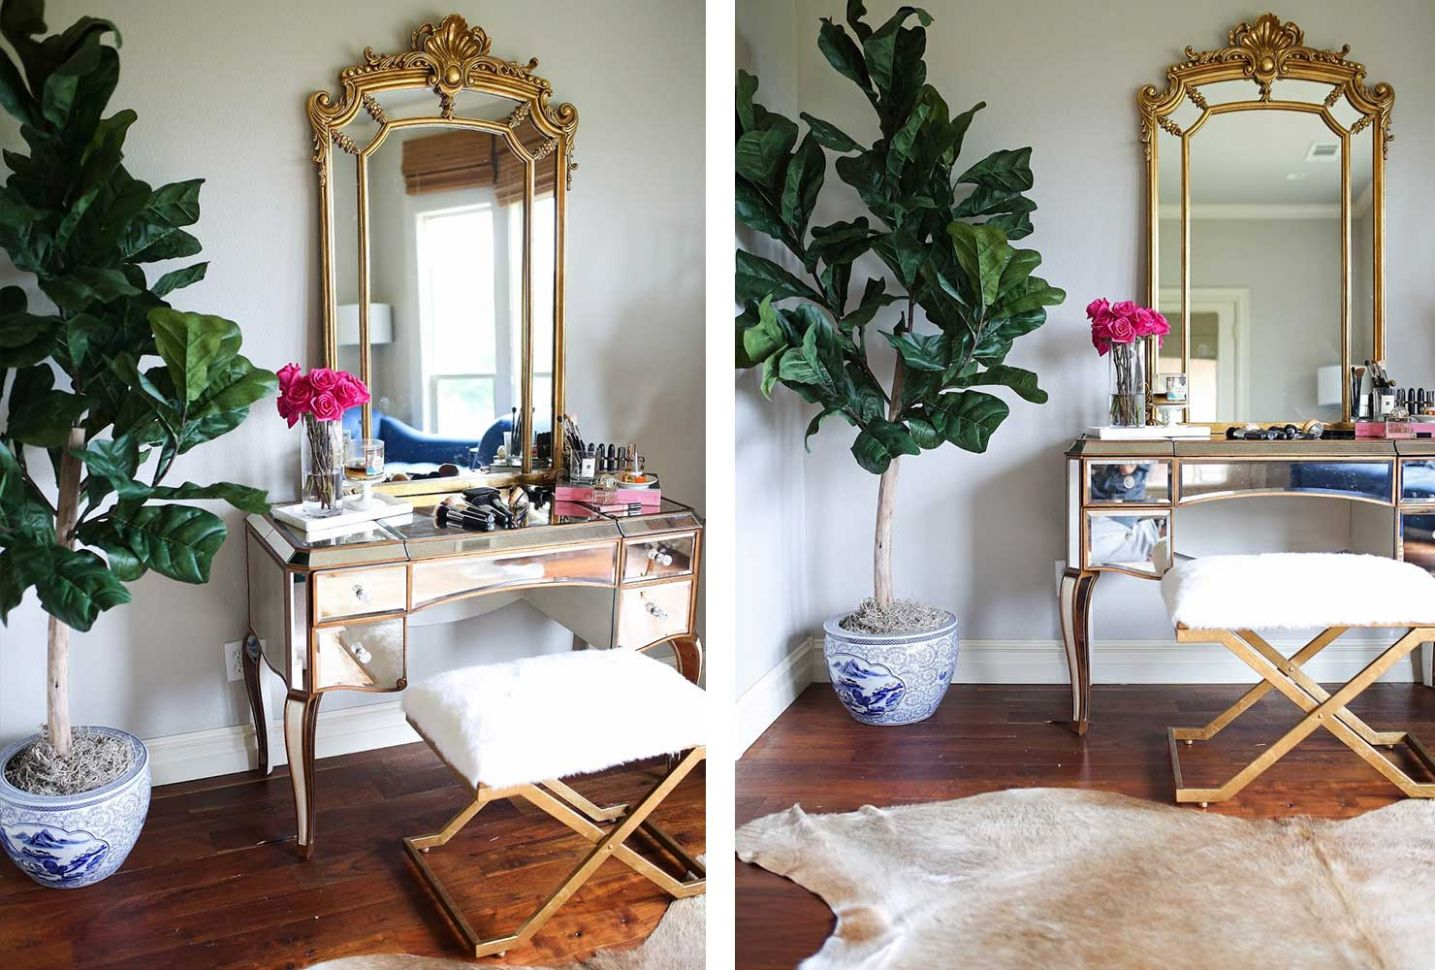 9 Makeup Room Ideas To Brighten Your Morning Routine   Shutterfly